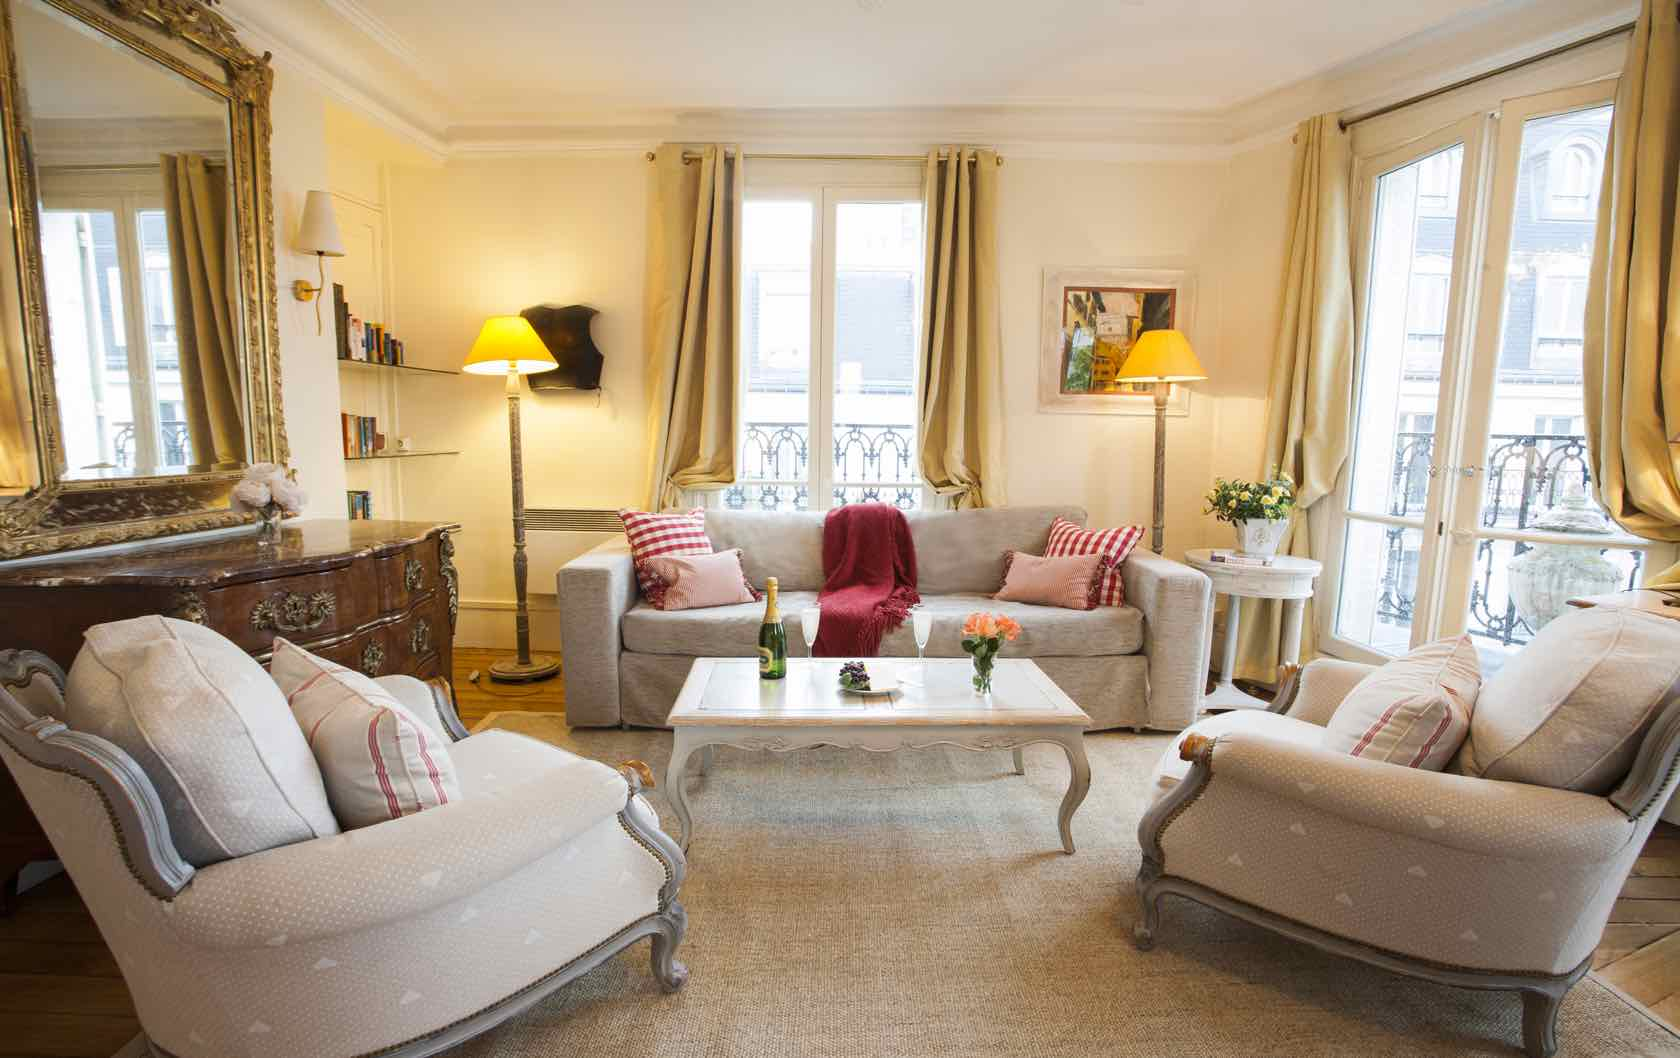 See our Long-Term Furnished Rentals in Paris by Paris Perfect Sancerre